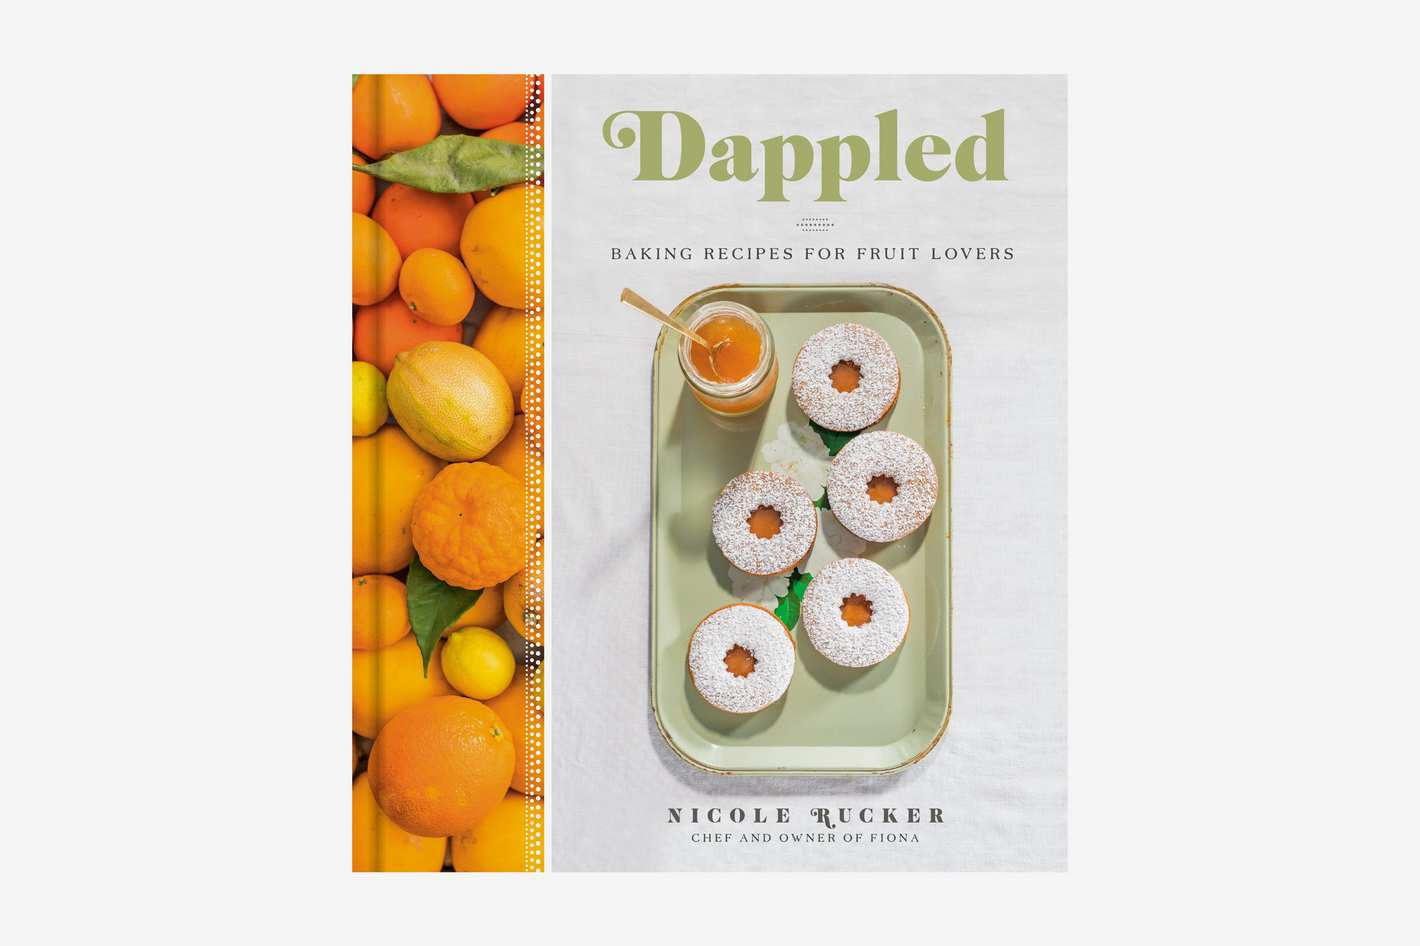 Dappled: Baking Recipes for Fruit Lovers